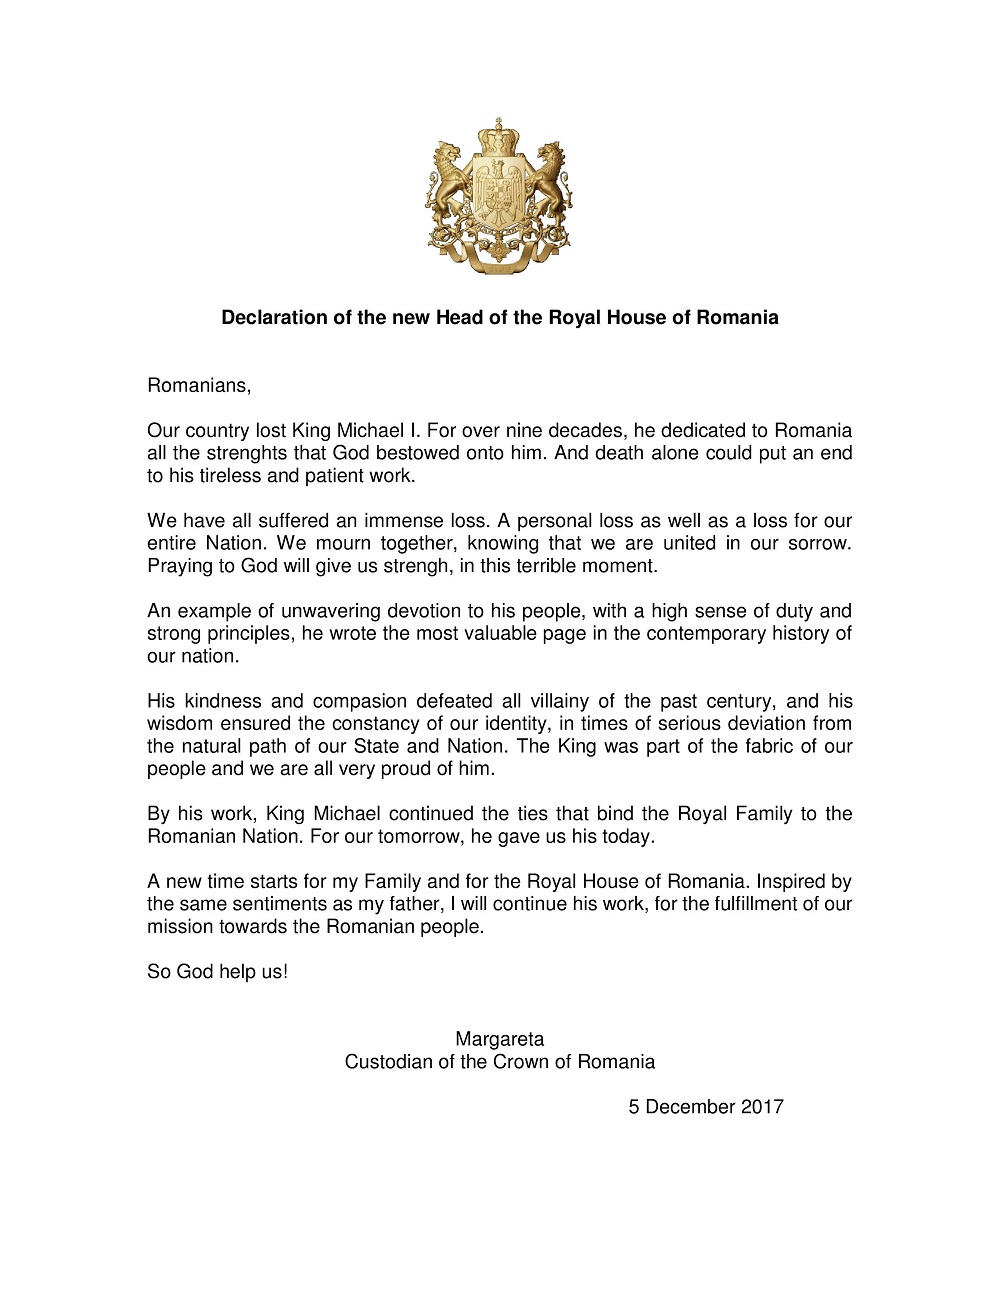 Declaration-of-the-new-Head-of-The-Royal-House-of-Romania-E.jpg